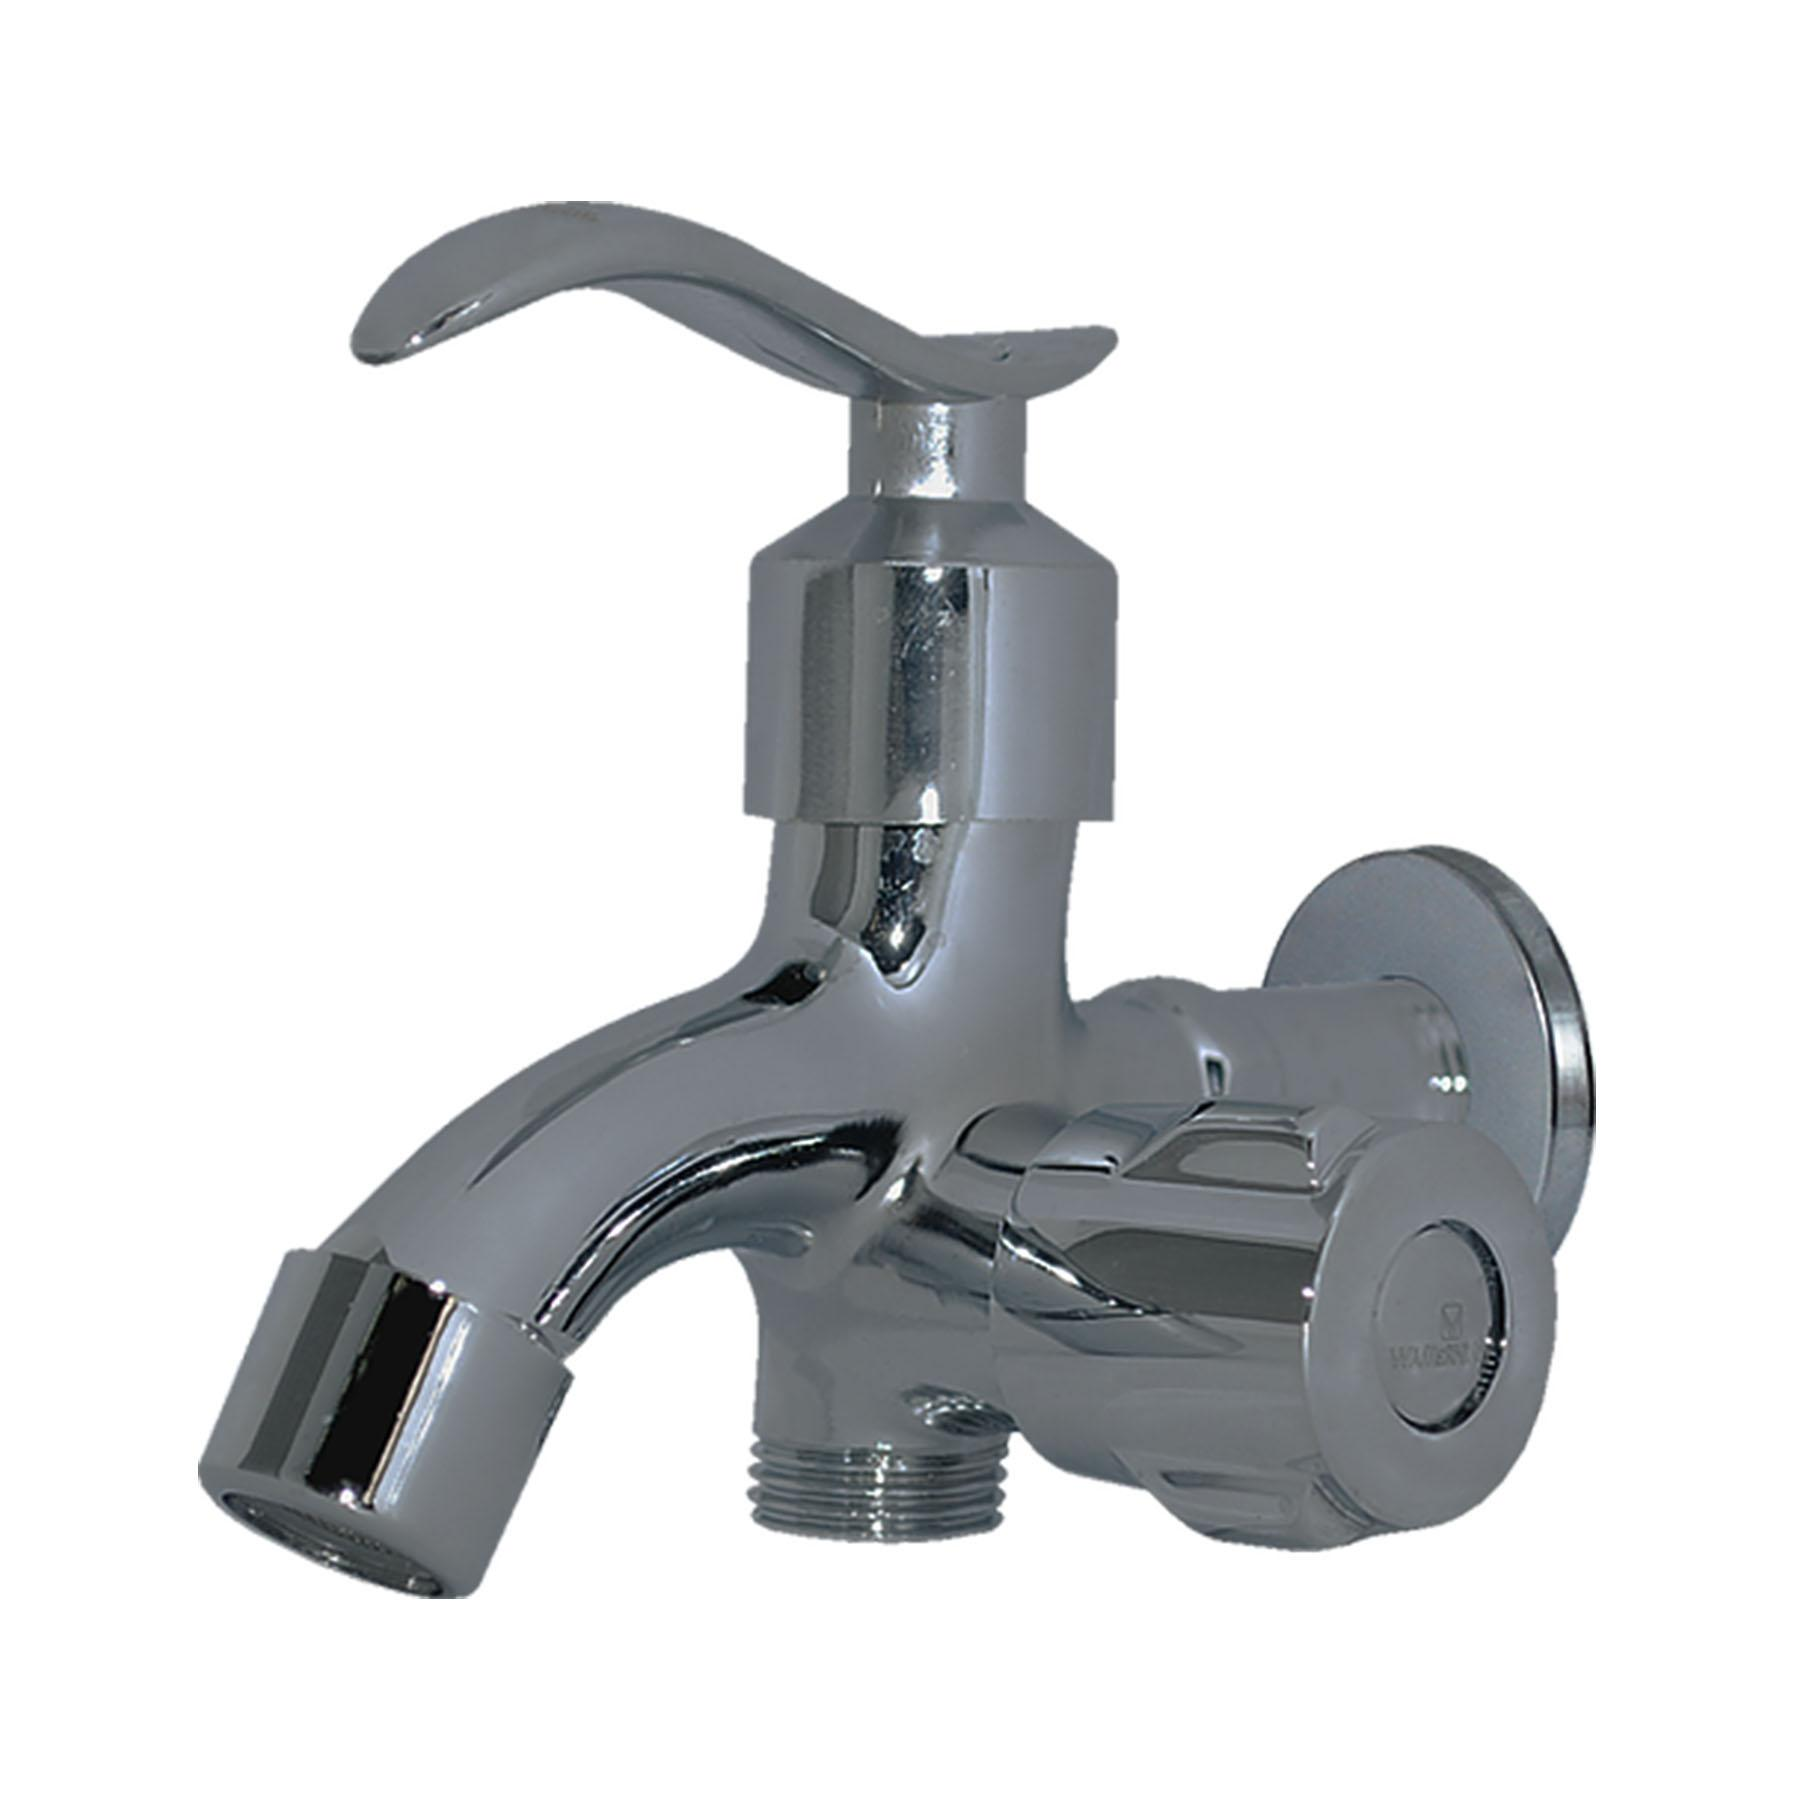 Wassernison Philippines: Wassernison price list - Water Bidet ...